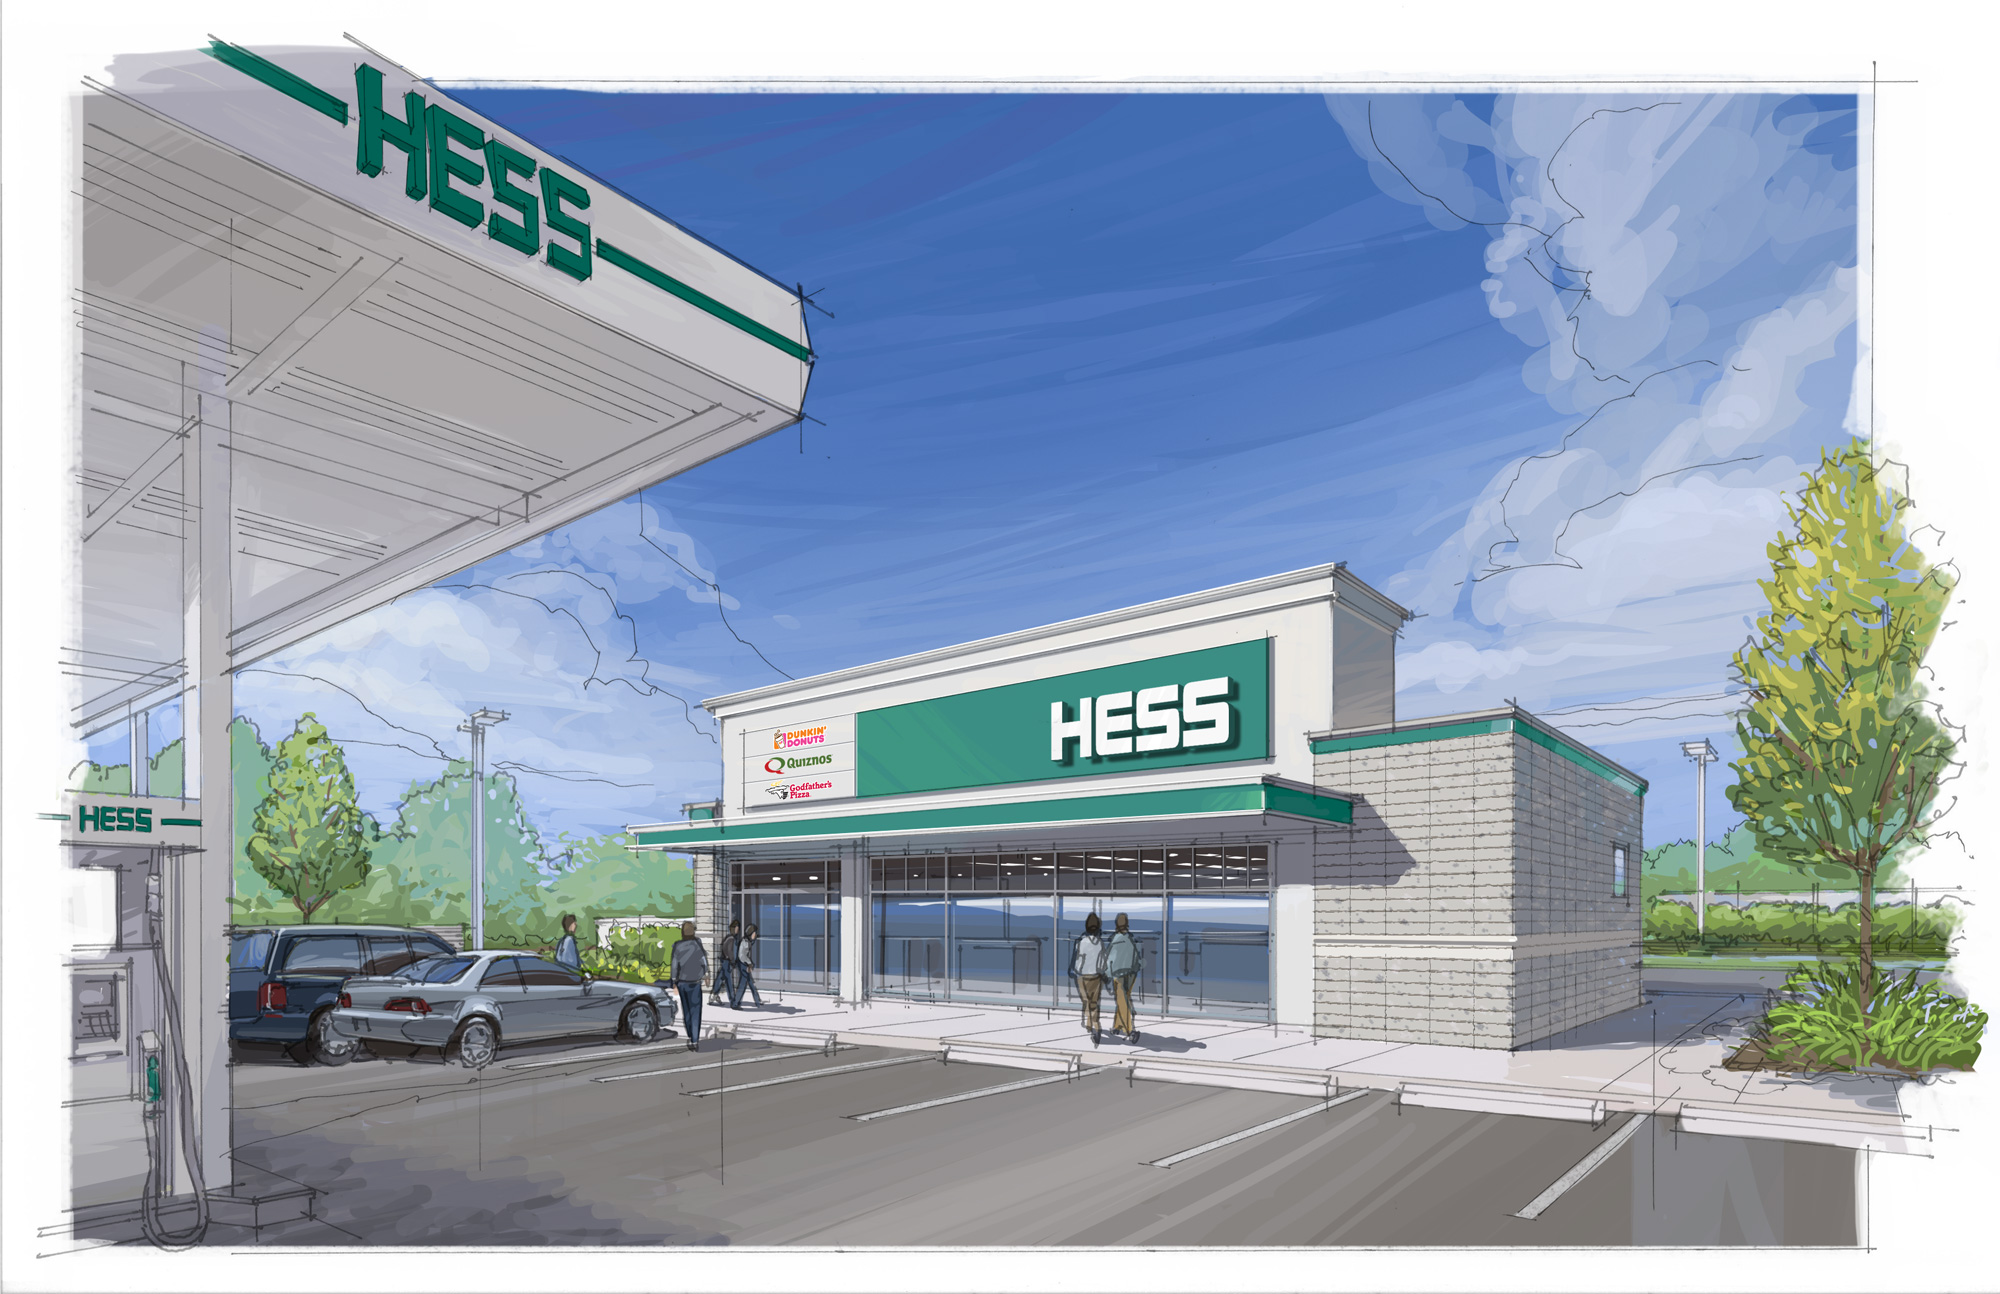 hess prototype convenience store architecture dave pinter